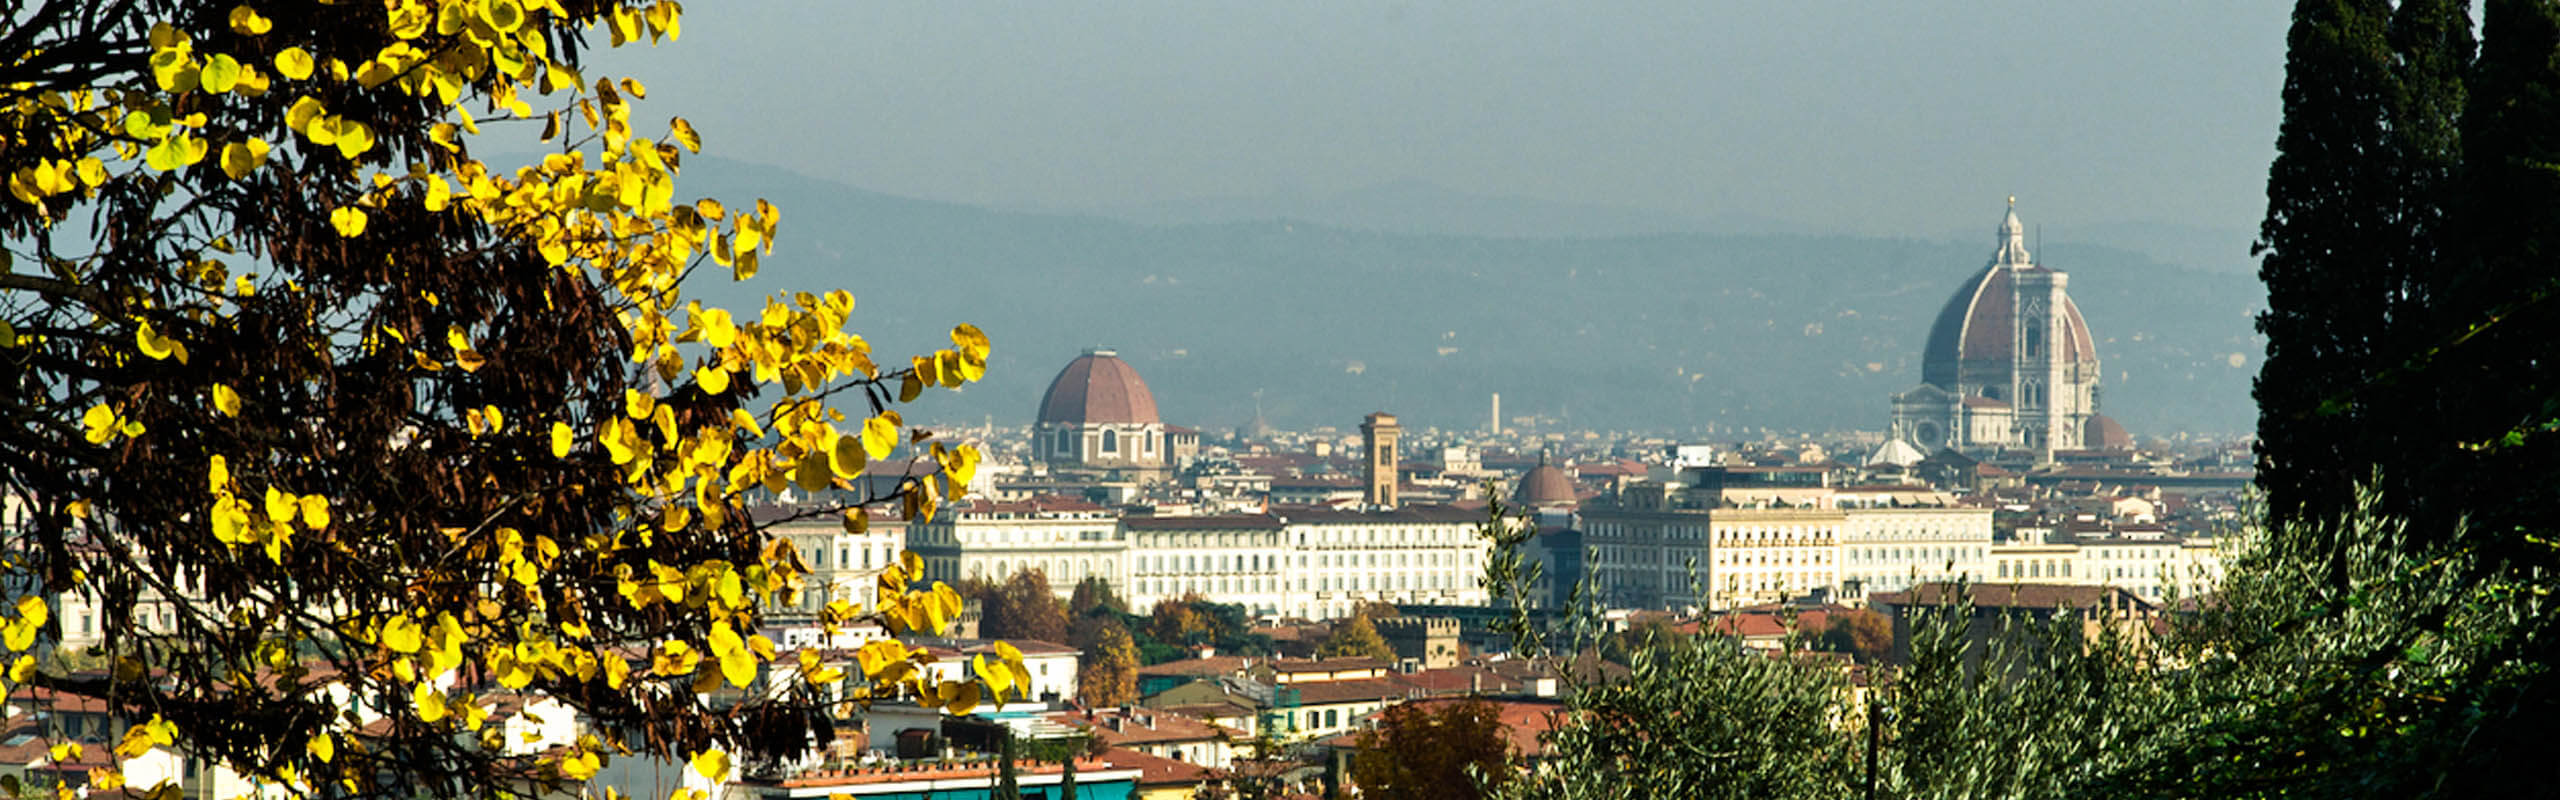 Piazzale Michelangelo, Florence - Panoramic view